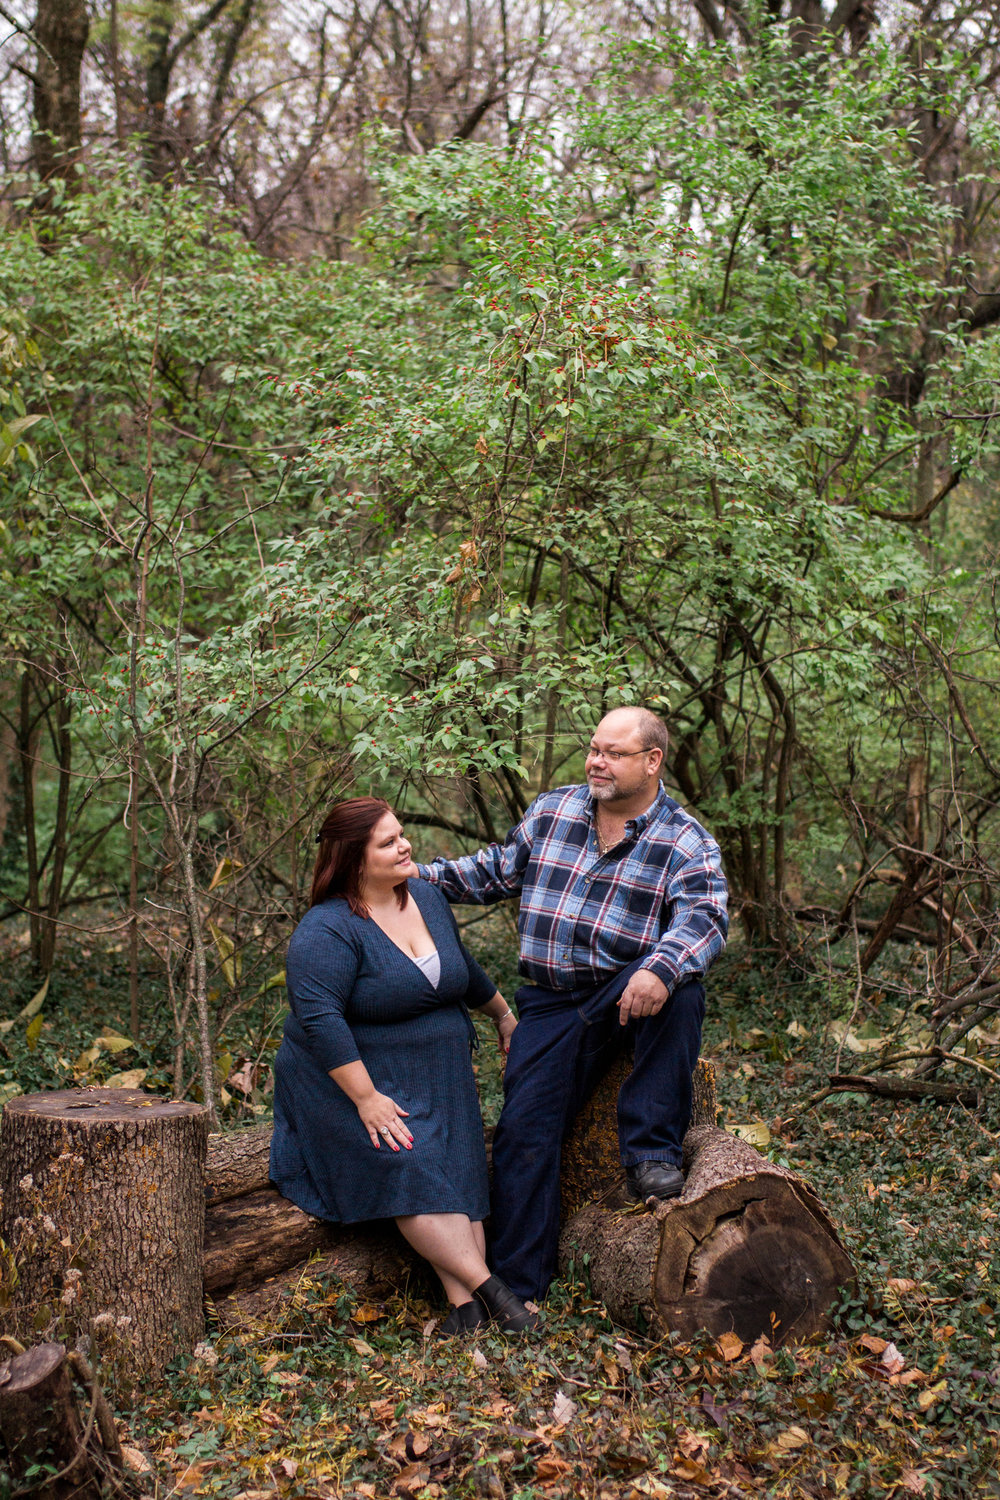 Kansas City lifestyle photographer, Kansas City family photographer, extended family session, fall family photos in the woods, father and grown daughter sitting